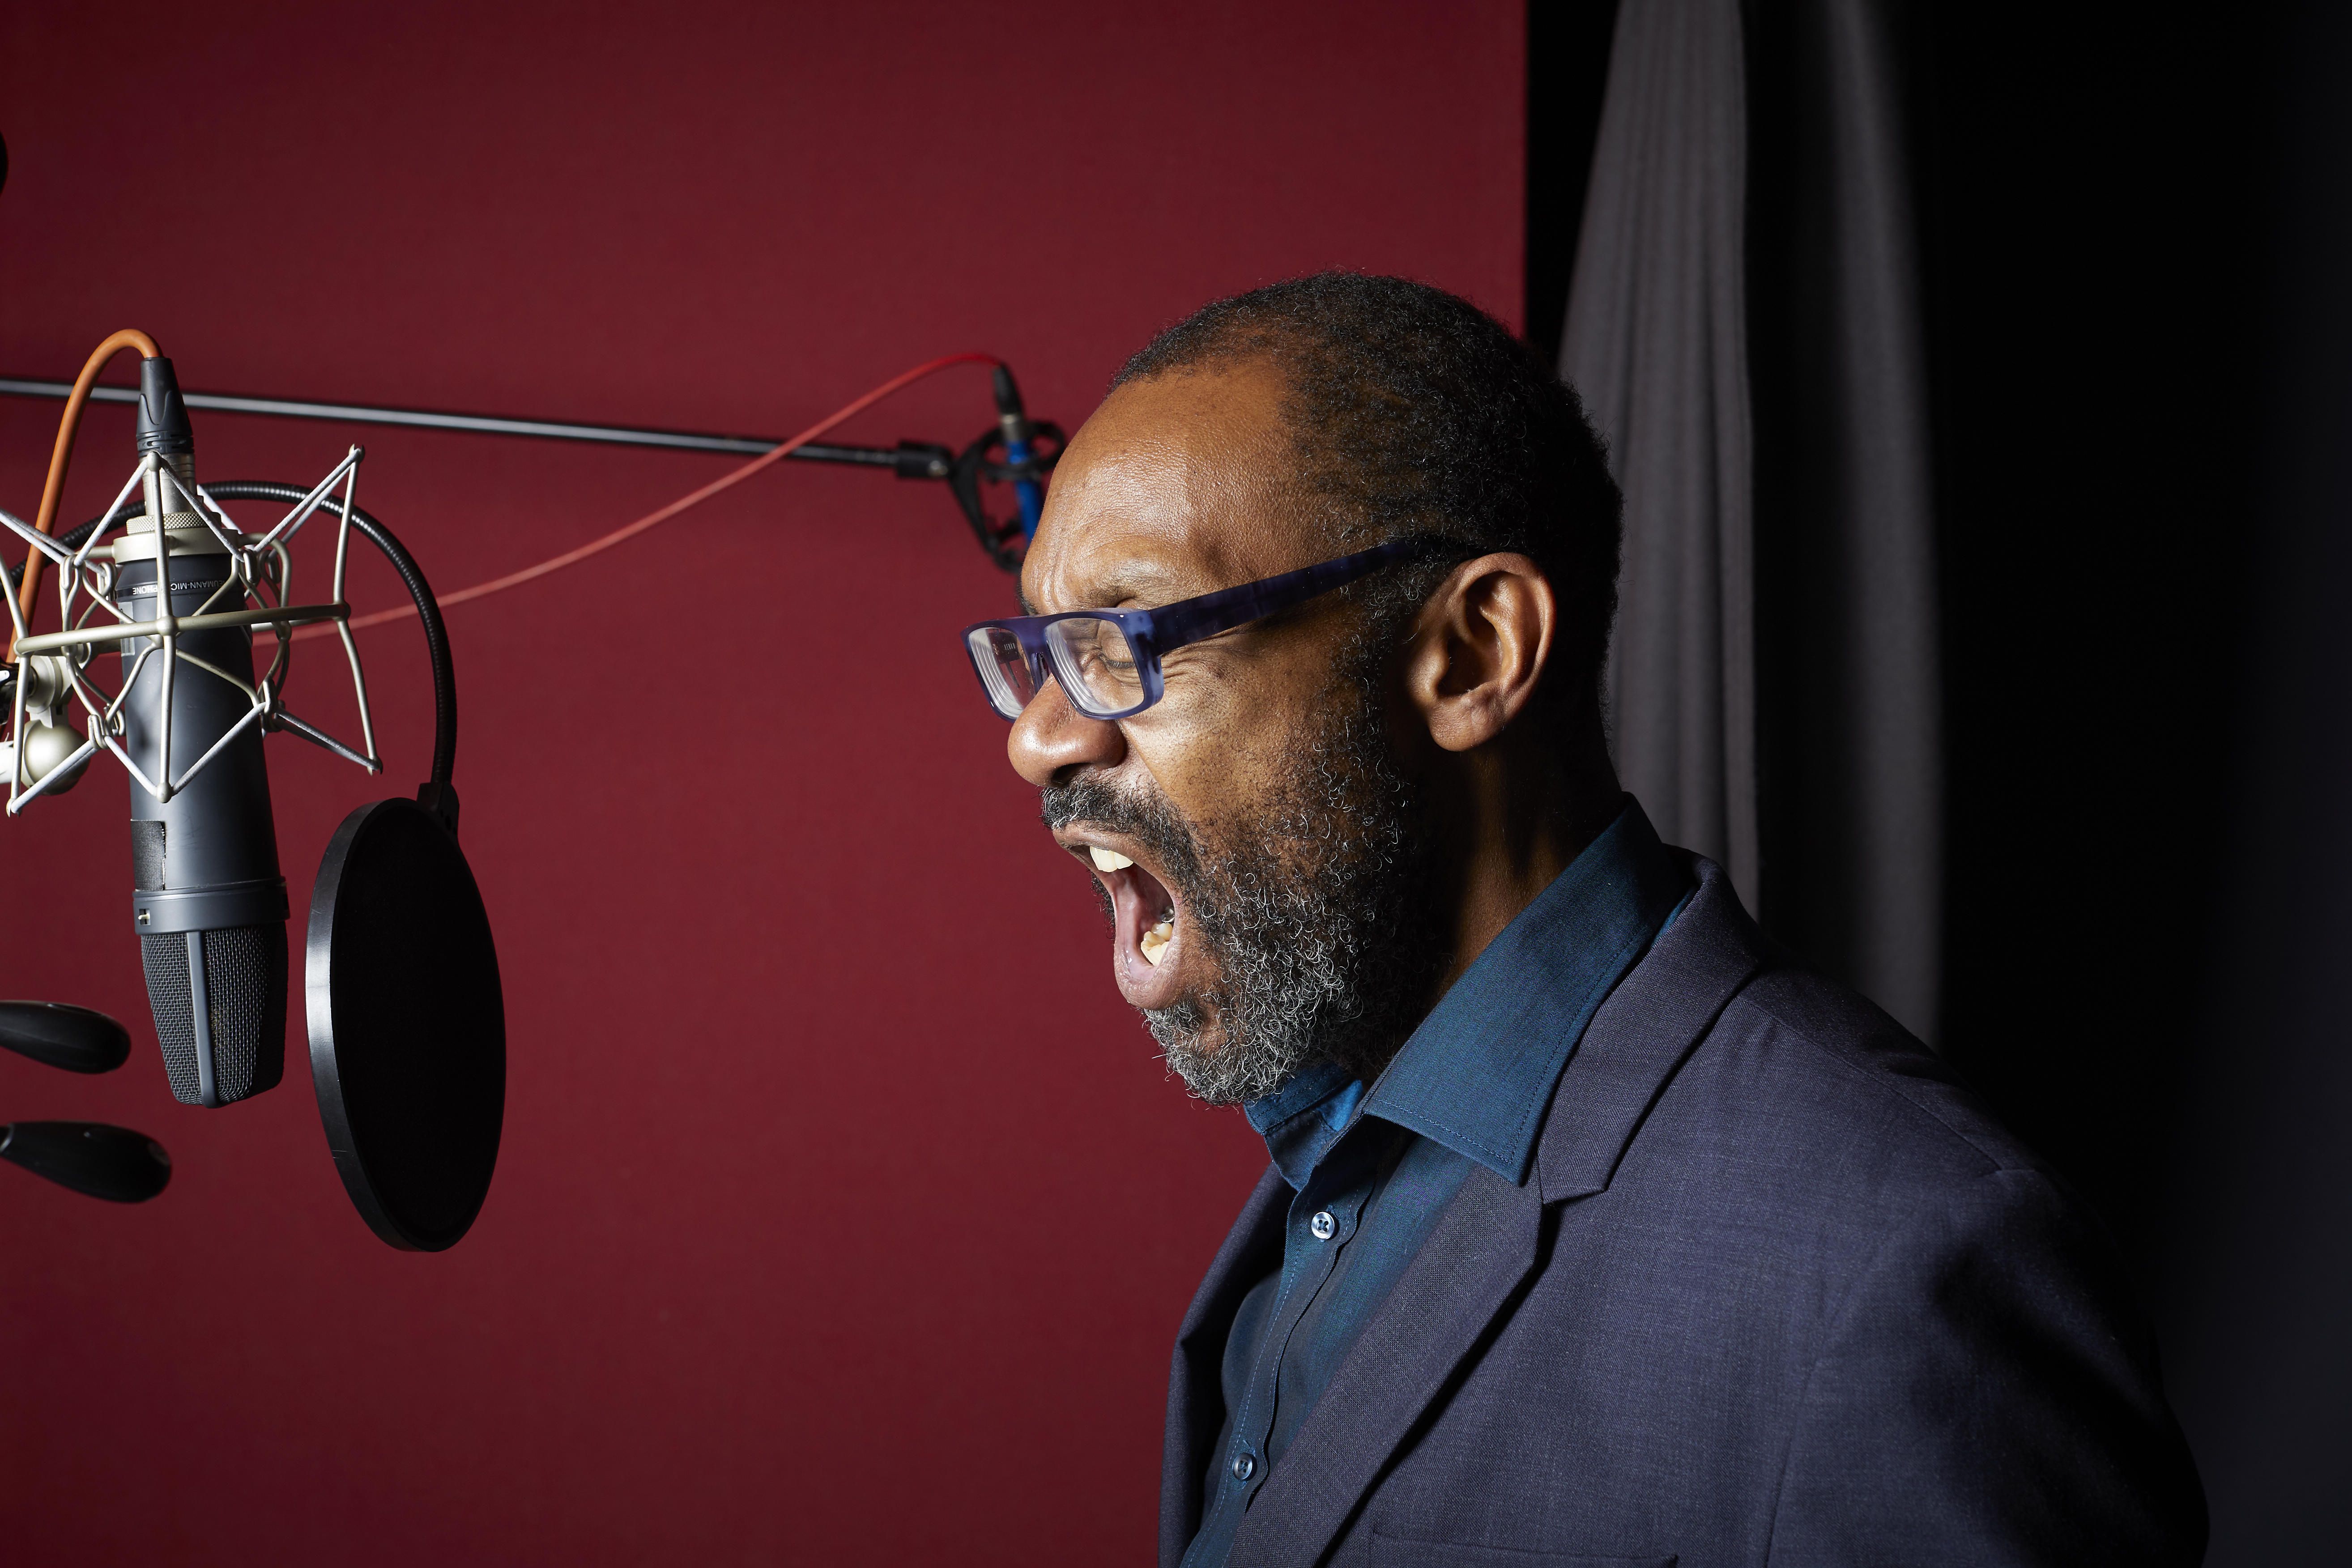 Sir Lenny Henry to narrate 'Zog' this Christmas